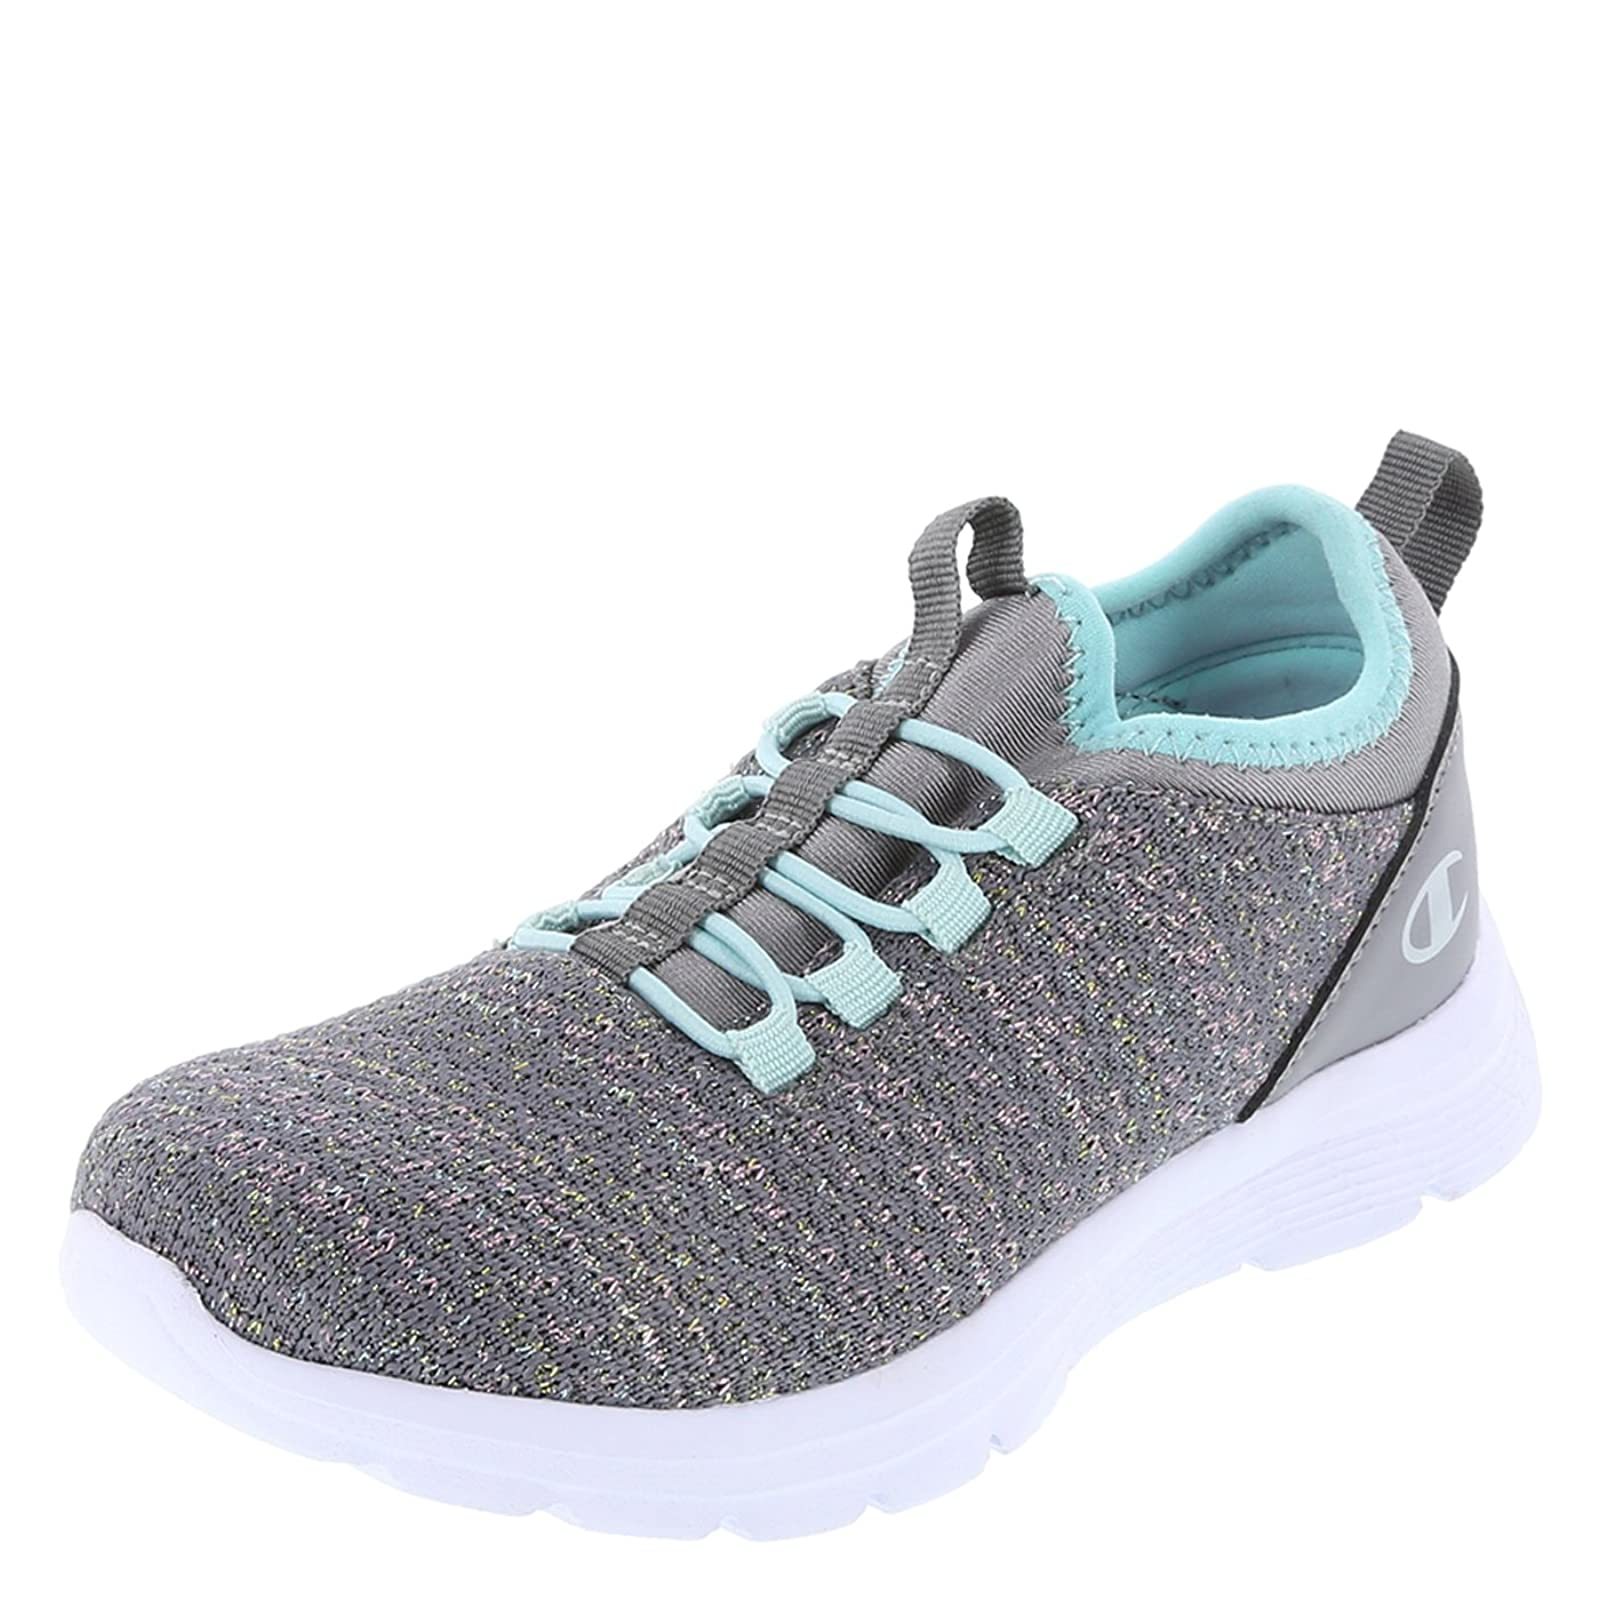 edca8bc59eb2 ... 3 Champion Grey Girls  Moxie Slip-On Runner 174796135 - 4